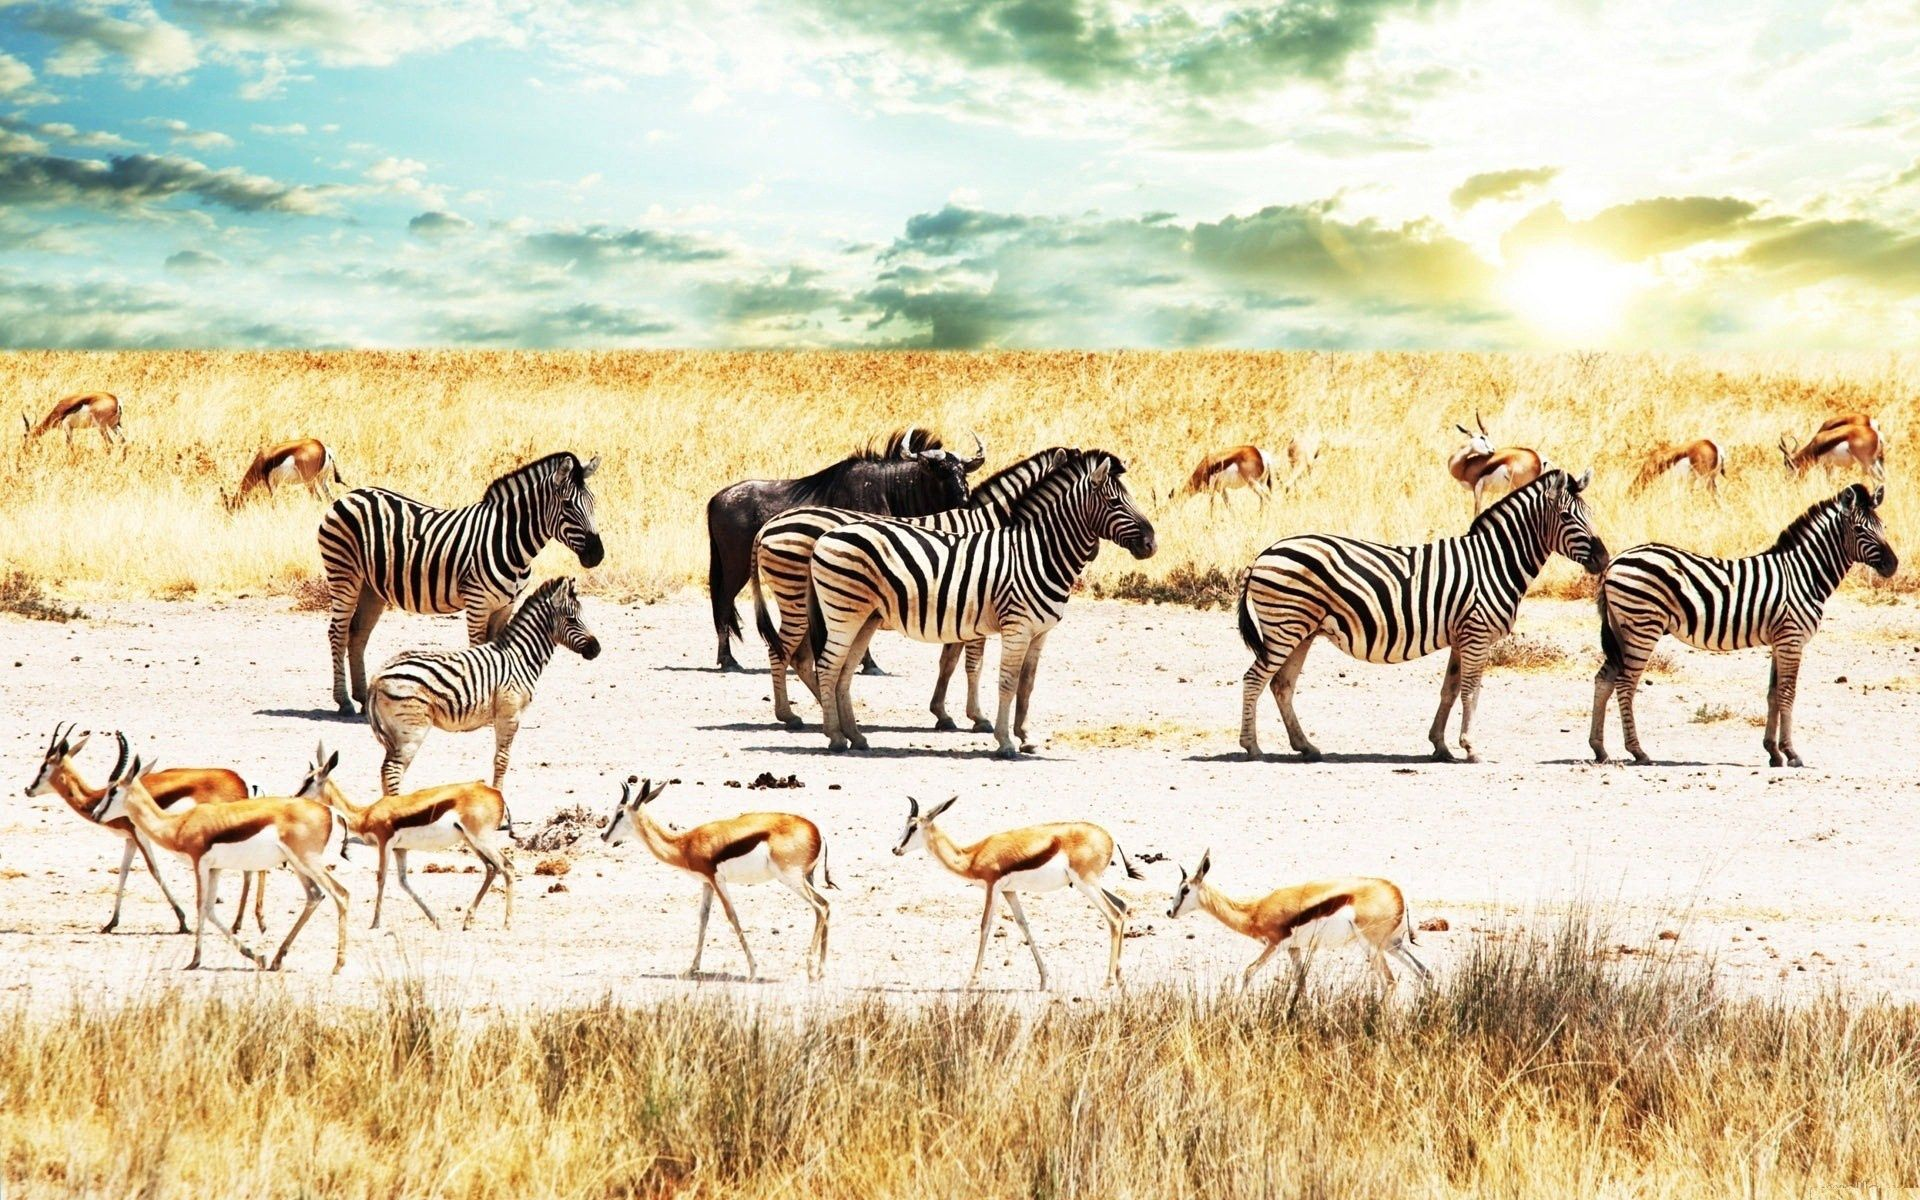 104244 download wallpaper Animals, Buffalo, Buffaloes, Africa, Sky, Savanna, Antelope, Zebra screensavers and pictures for free